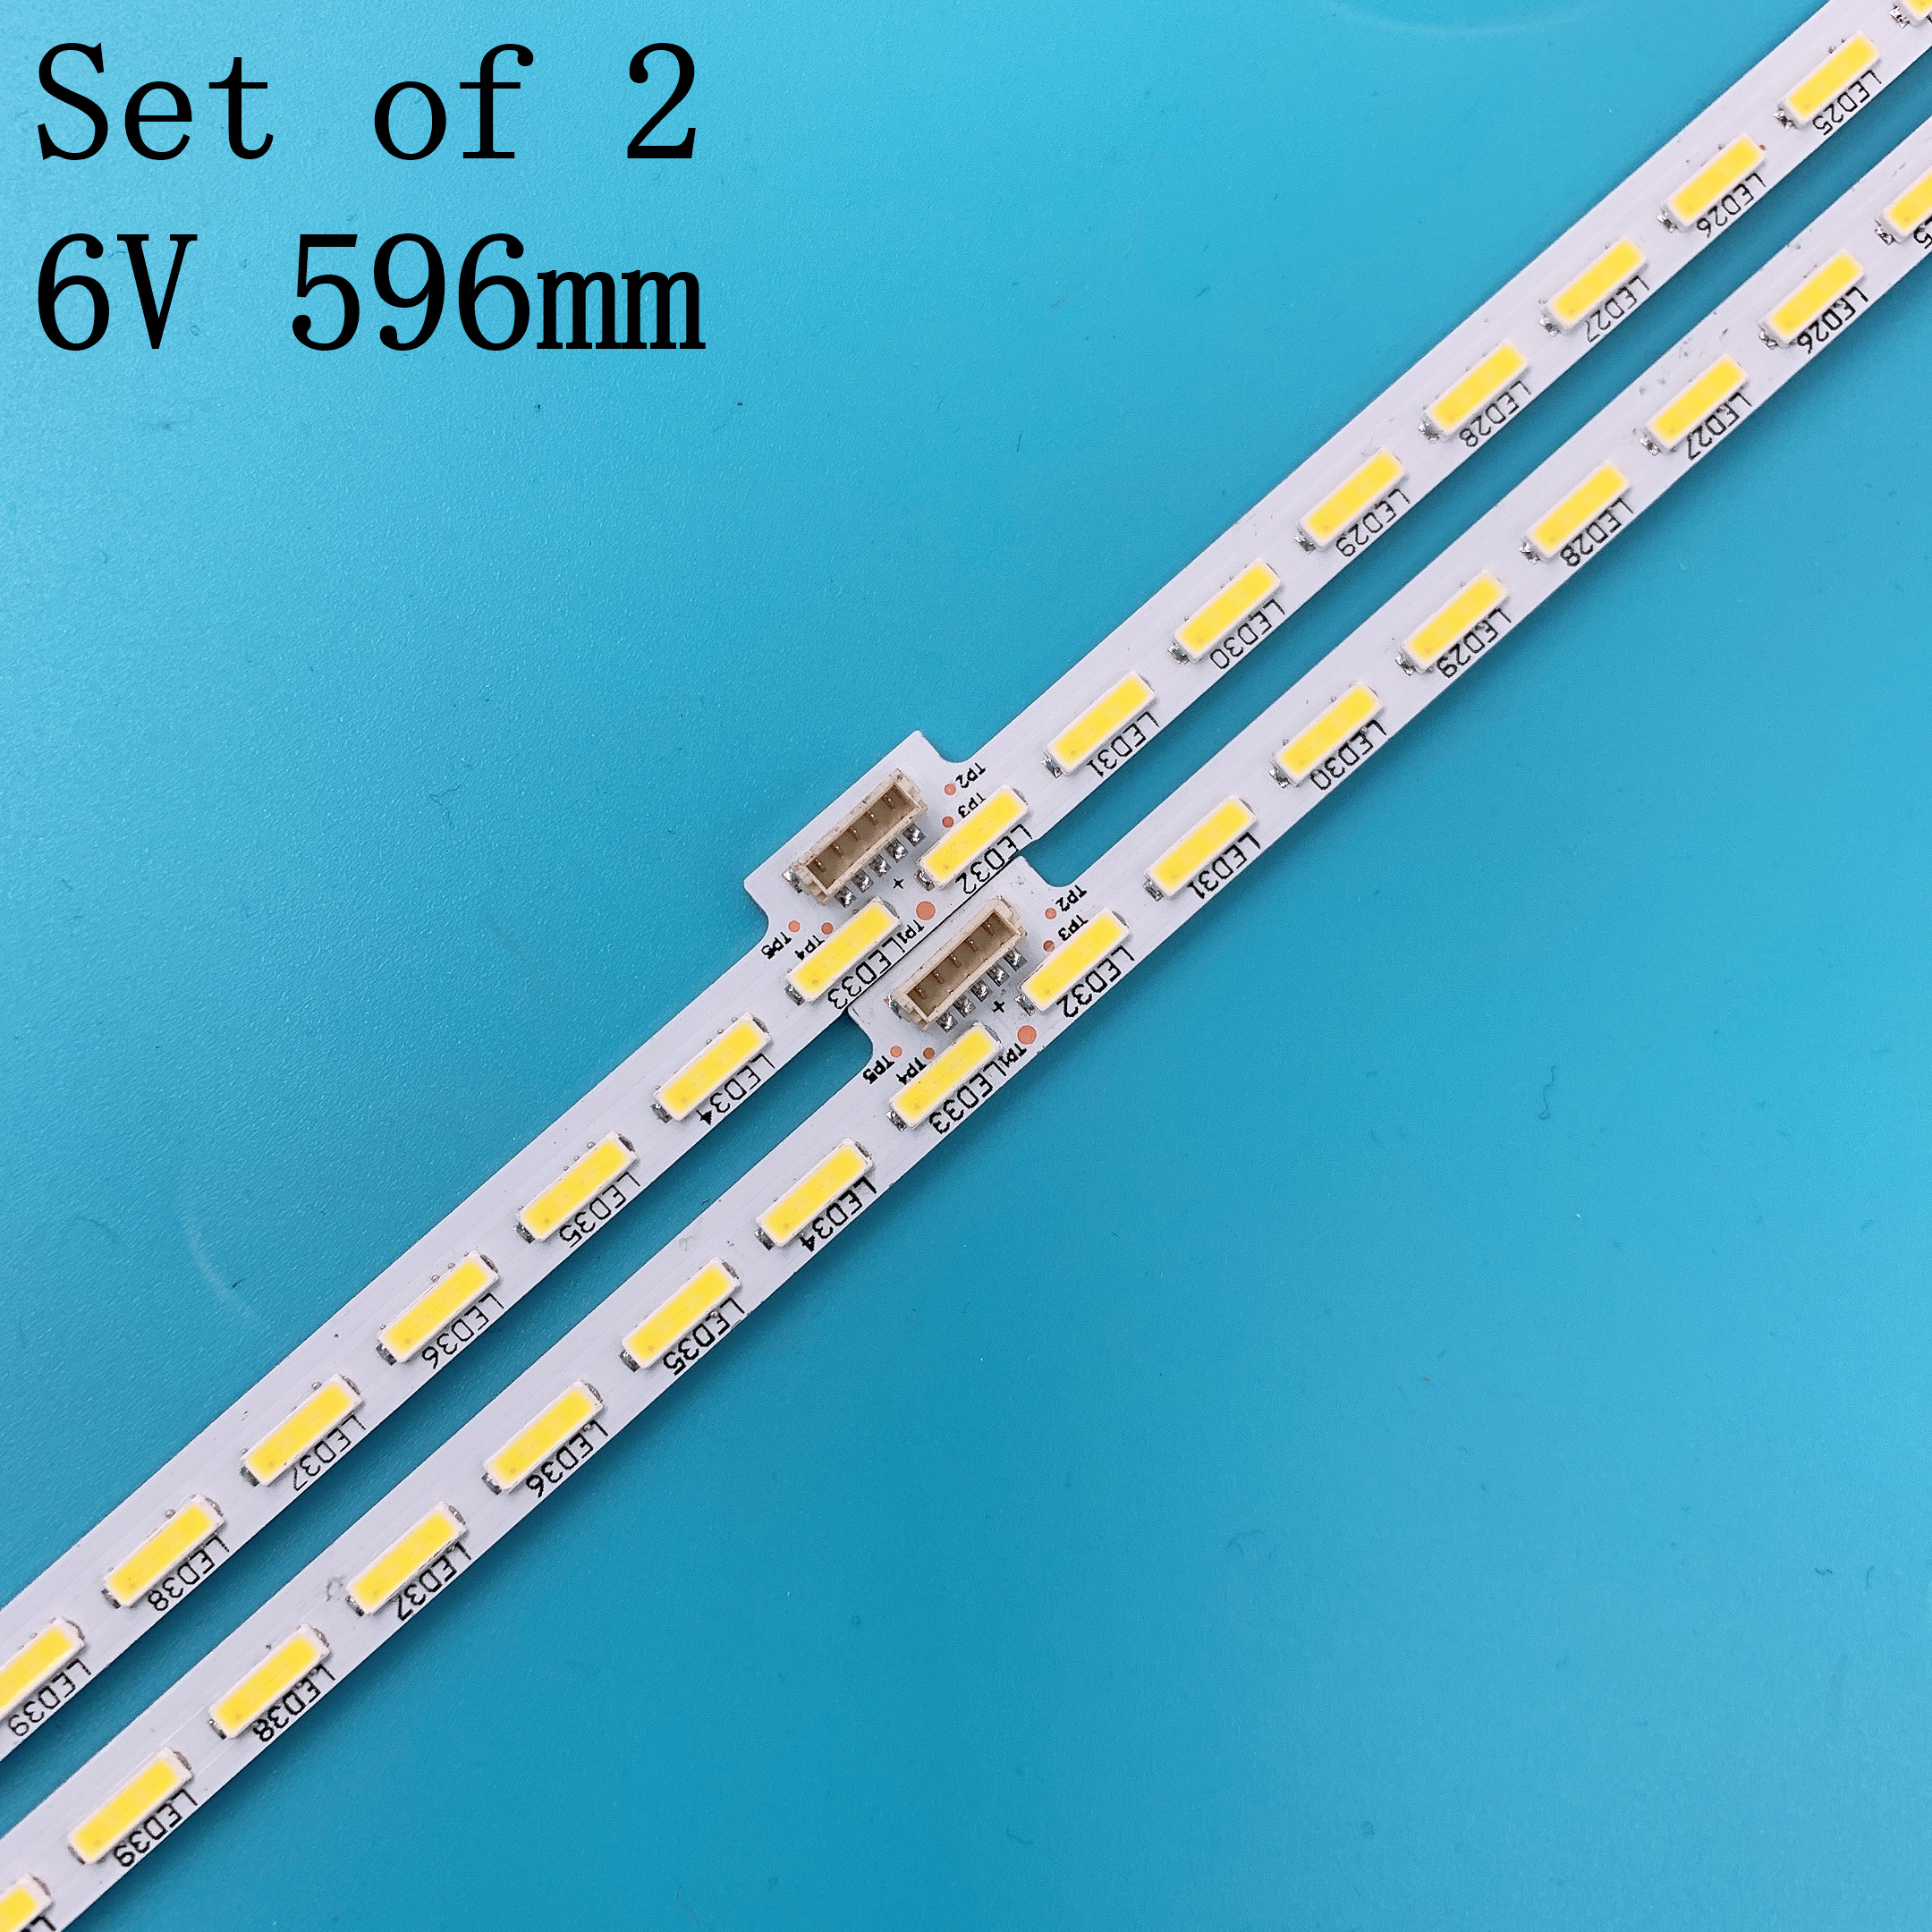 LED Backlight Strip 64 Leds For Sony Sharp YLS_HRN55_7020_REV2 V1.5 E162061 15521N SYV5541 KD-55X8500D KD-55X8505C KD-55X8508C